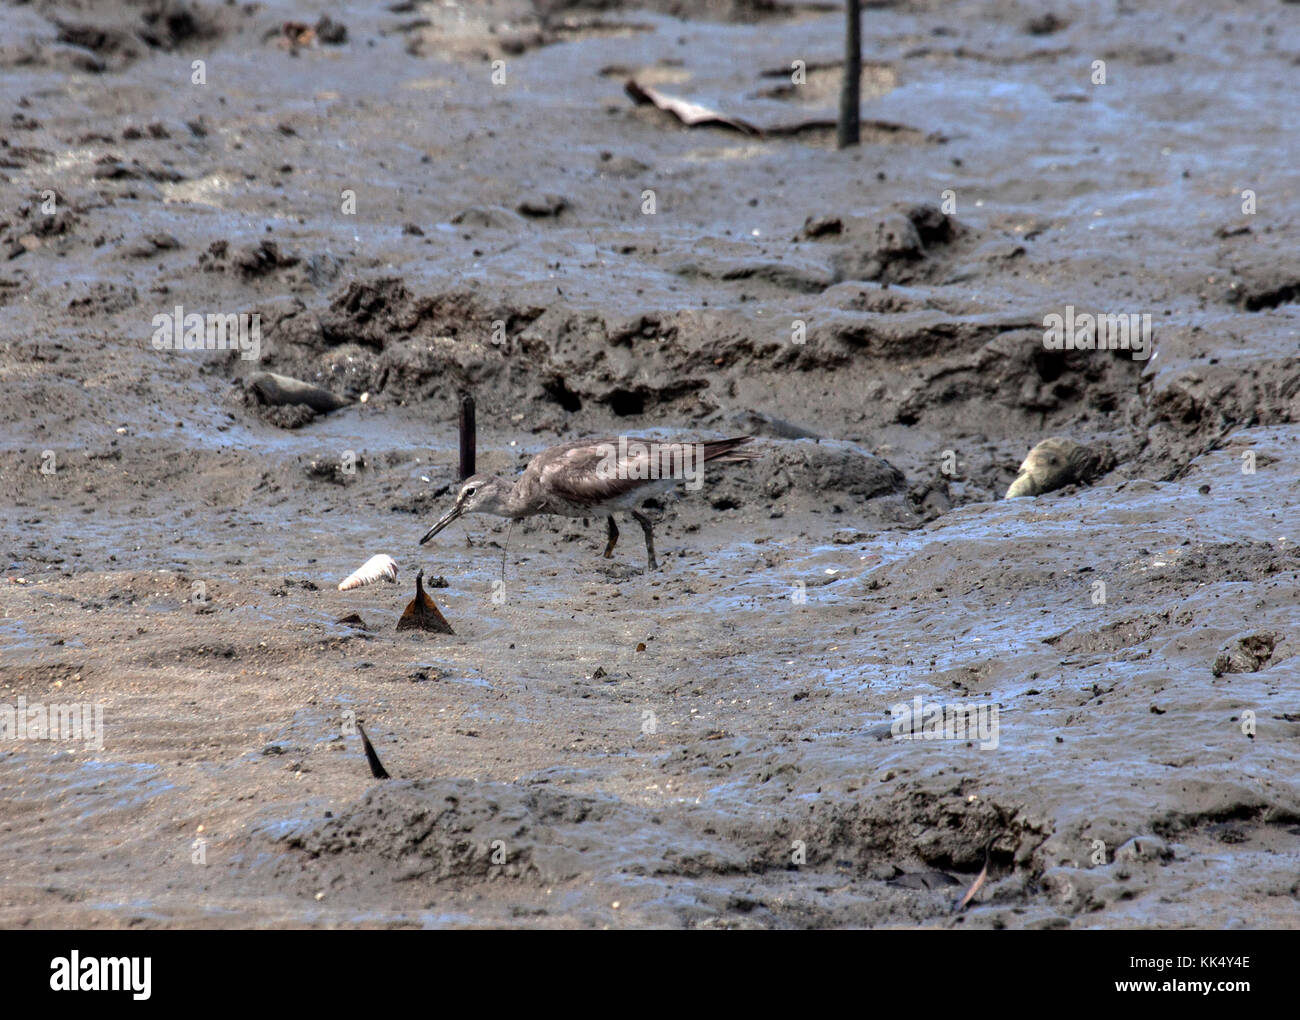 Grey tailed tattler investigating shell as it forages on mudflat in Queensland Australia - Stock Image